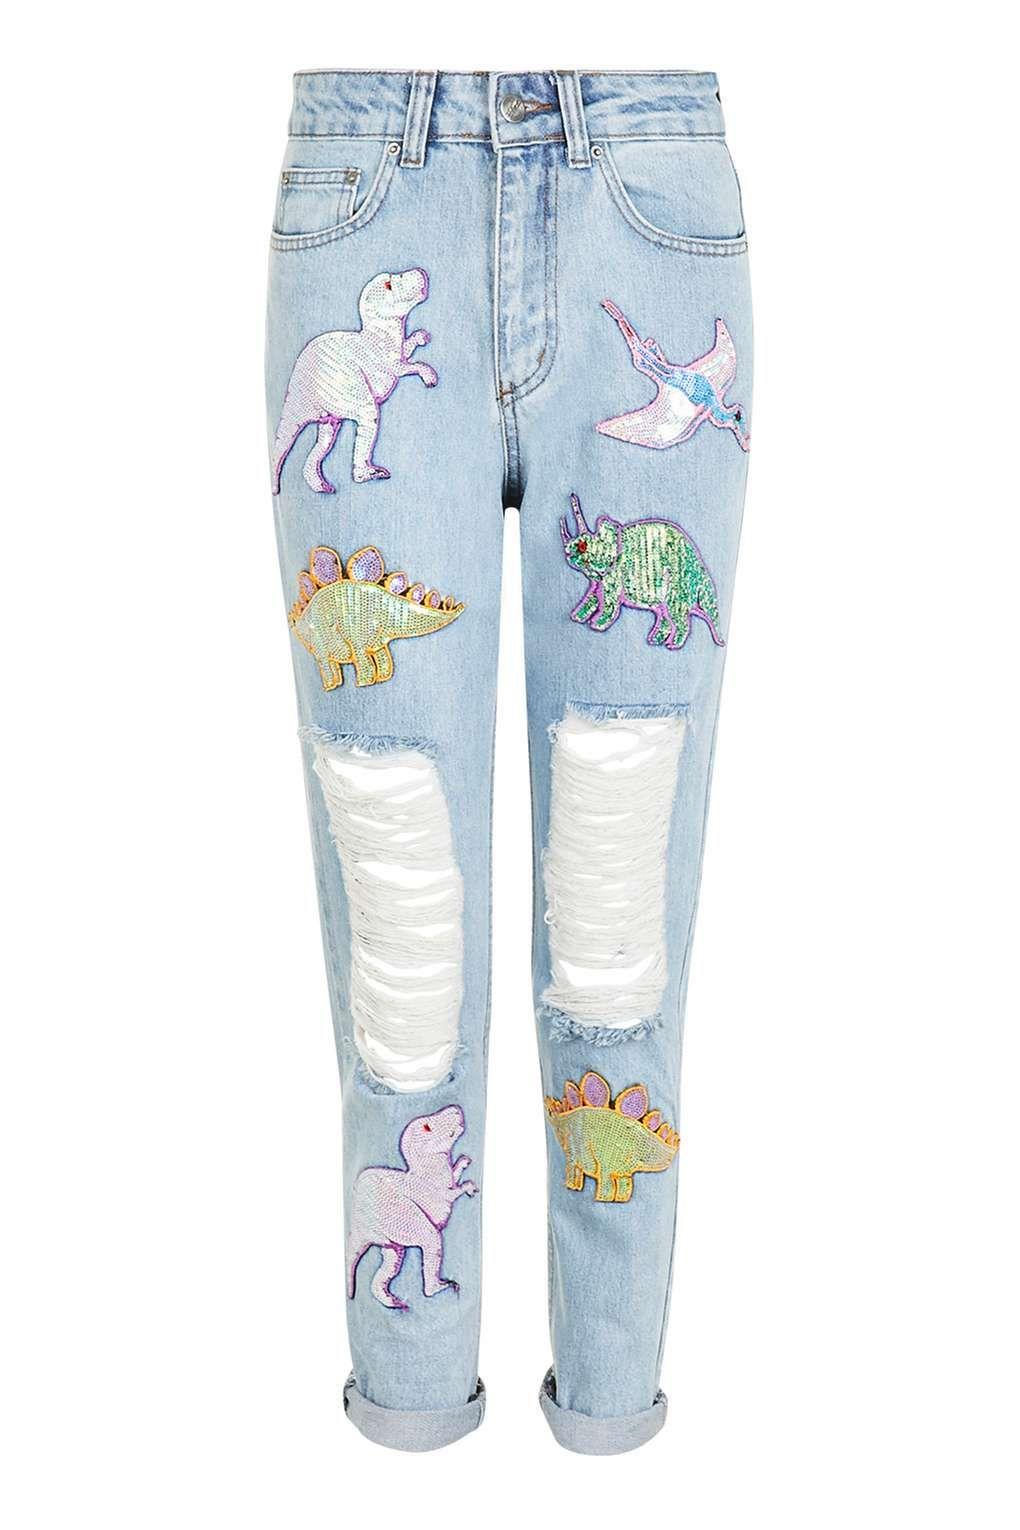 388c300762a301 Sequin Dinosaur Mom Jeans by Kuccia in 2019 | Get In My Closet ...